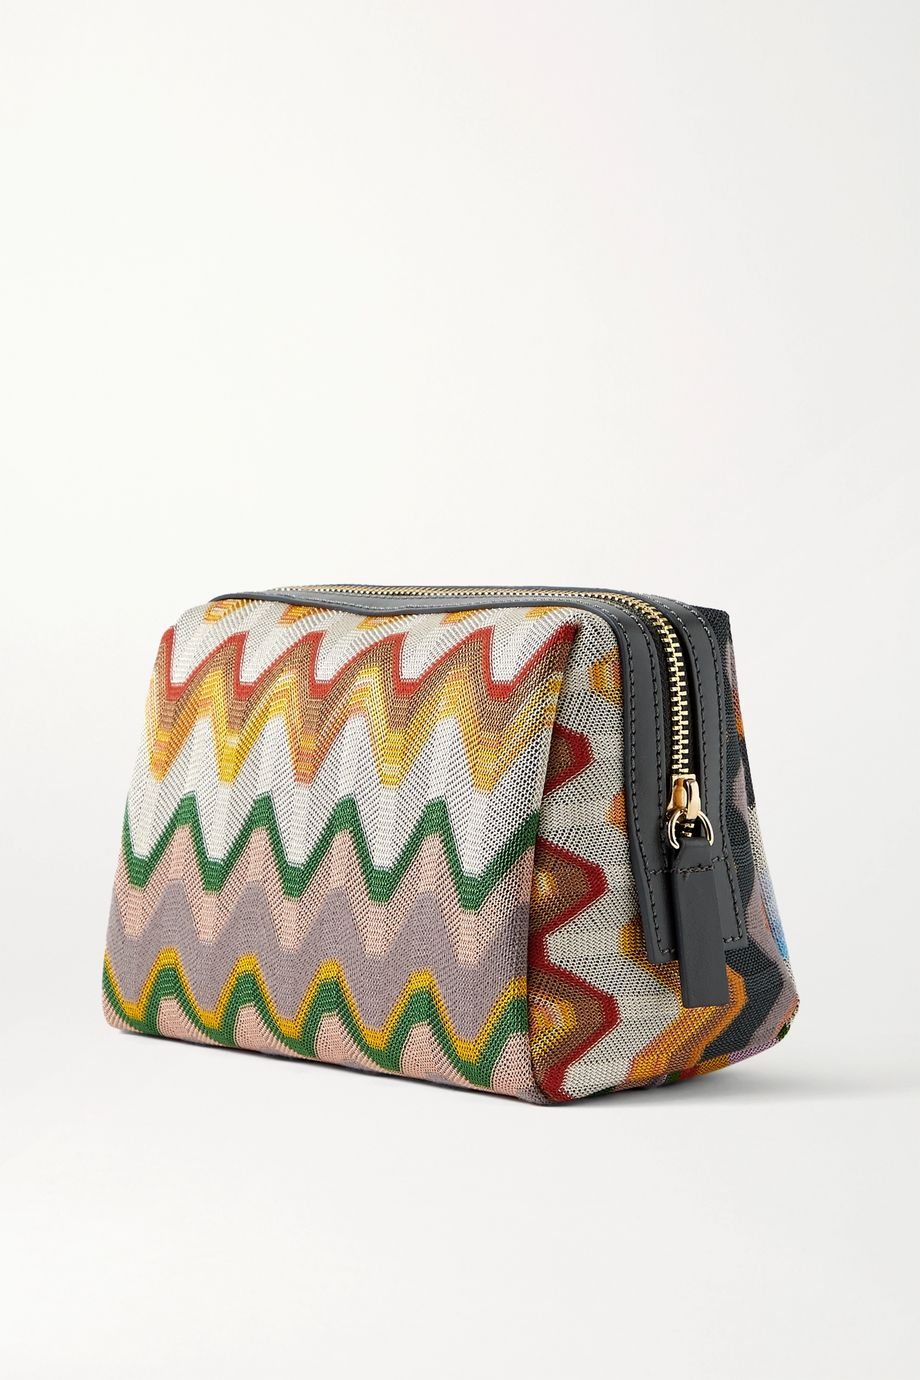 Missoni Leather-trimmed crochet-knit cosmetics case